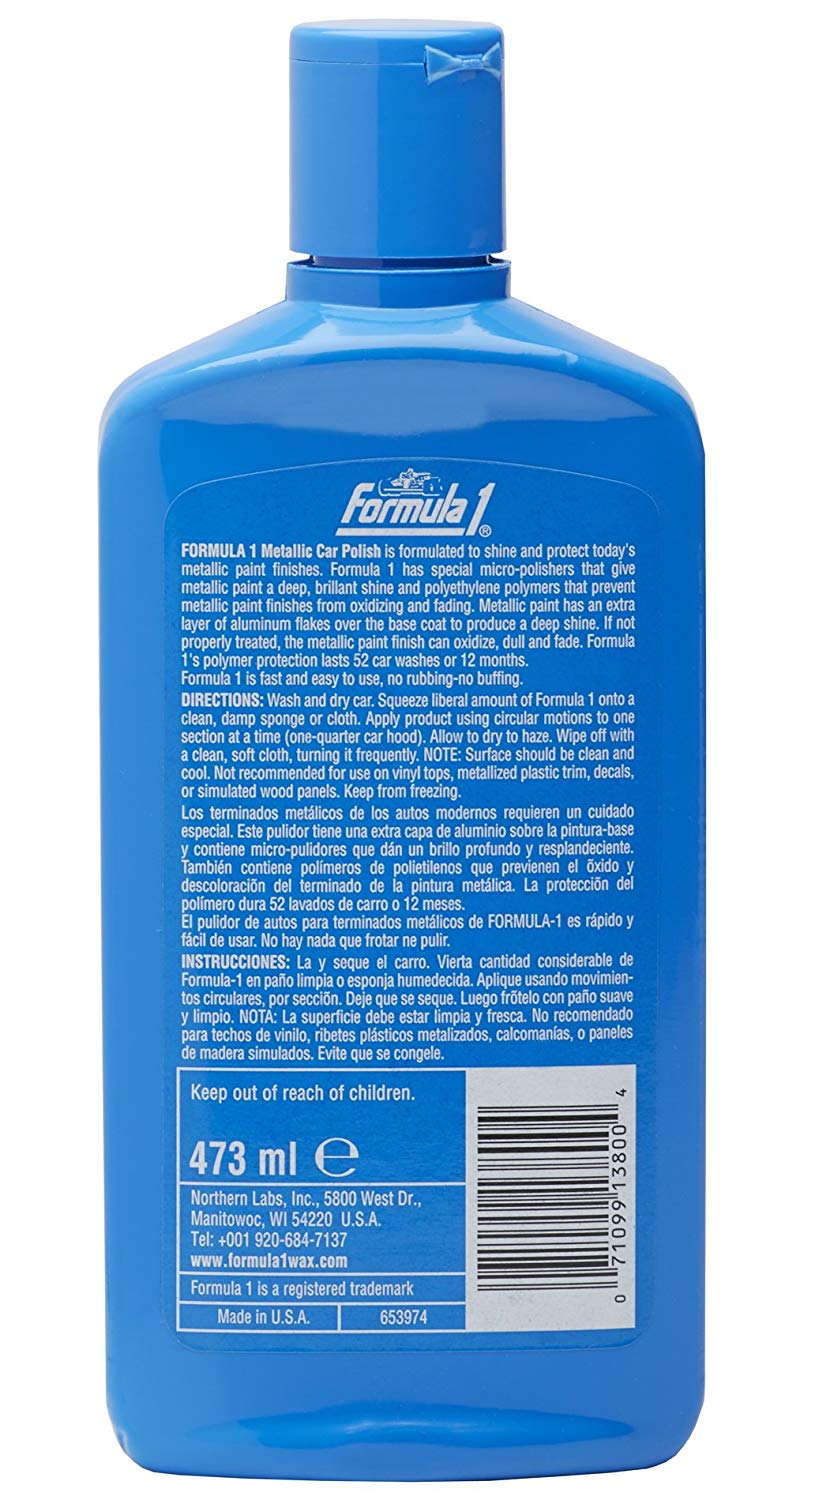 Formula 1 Metallic Car Polish 473ml